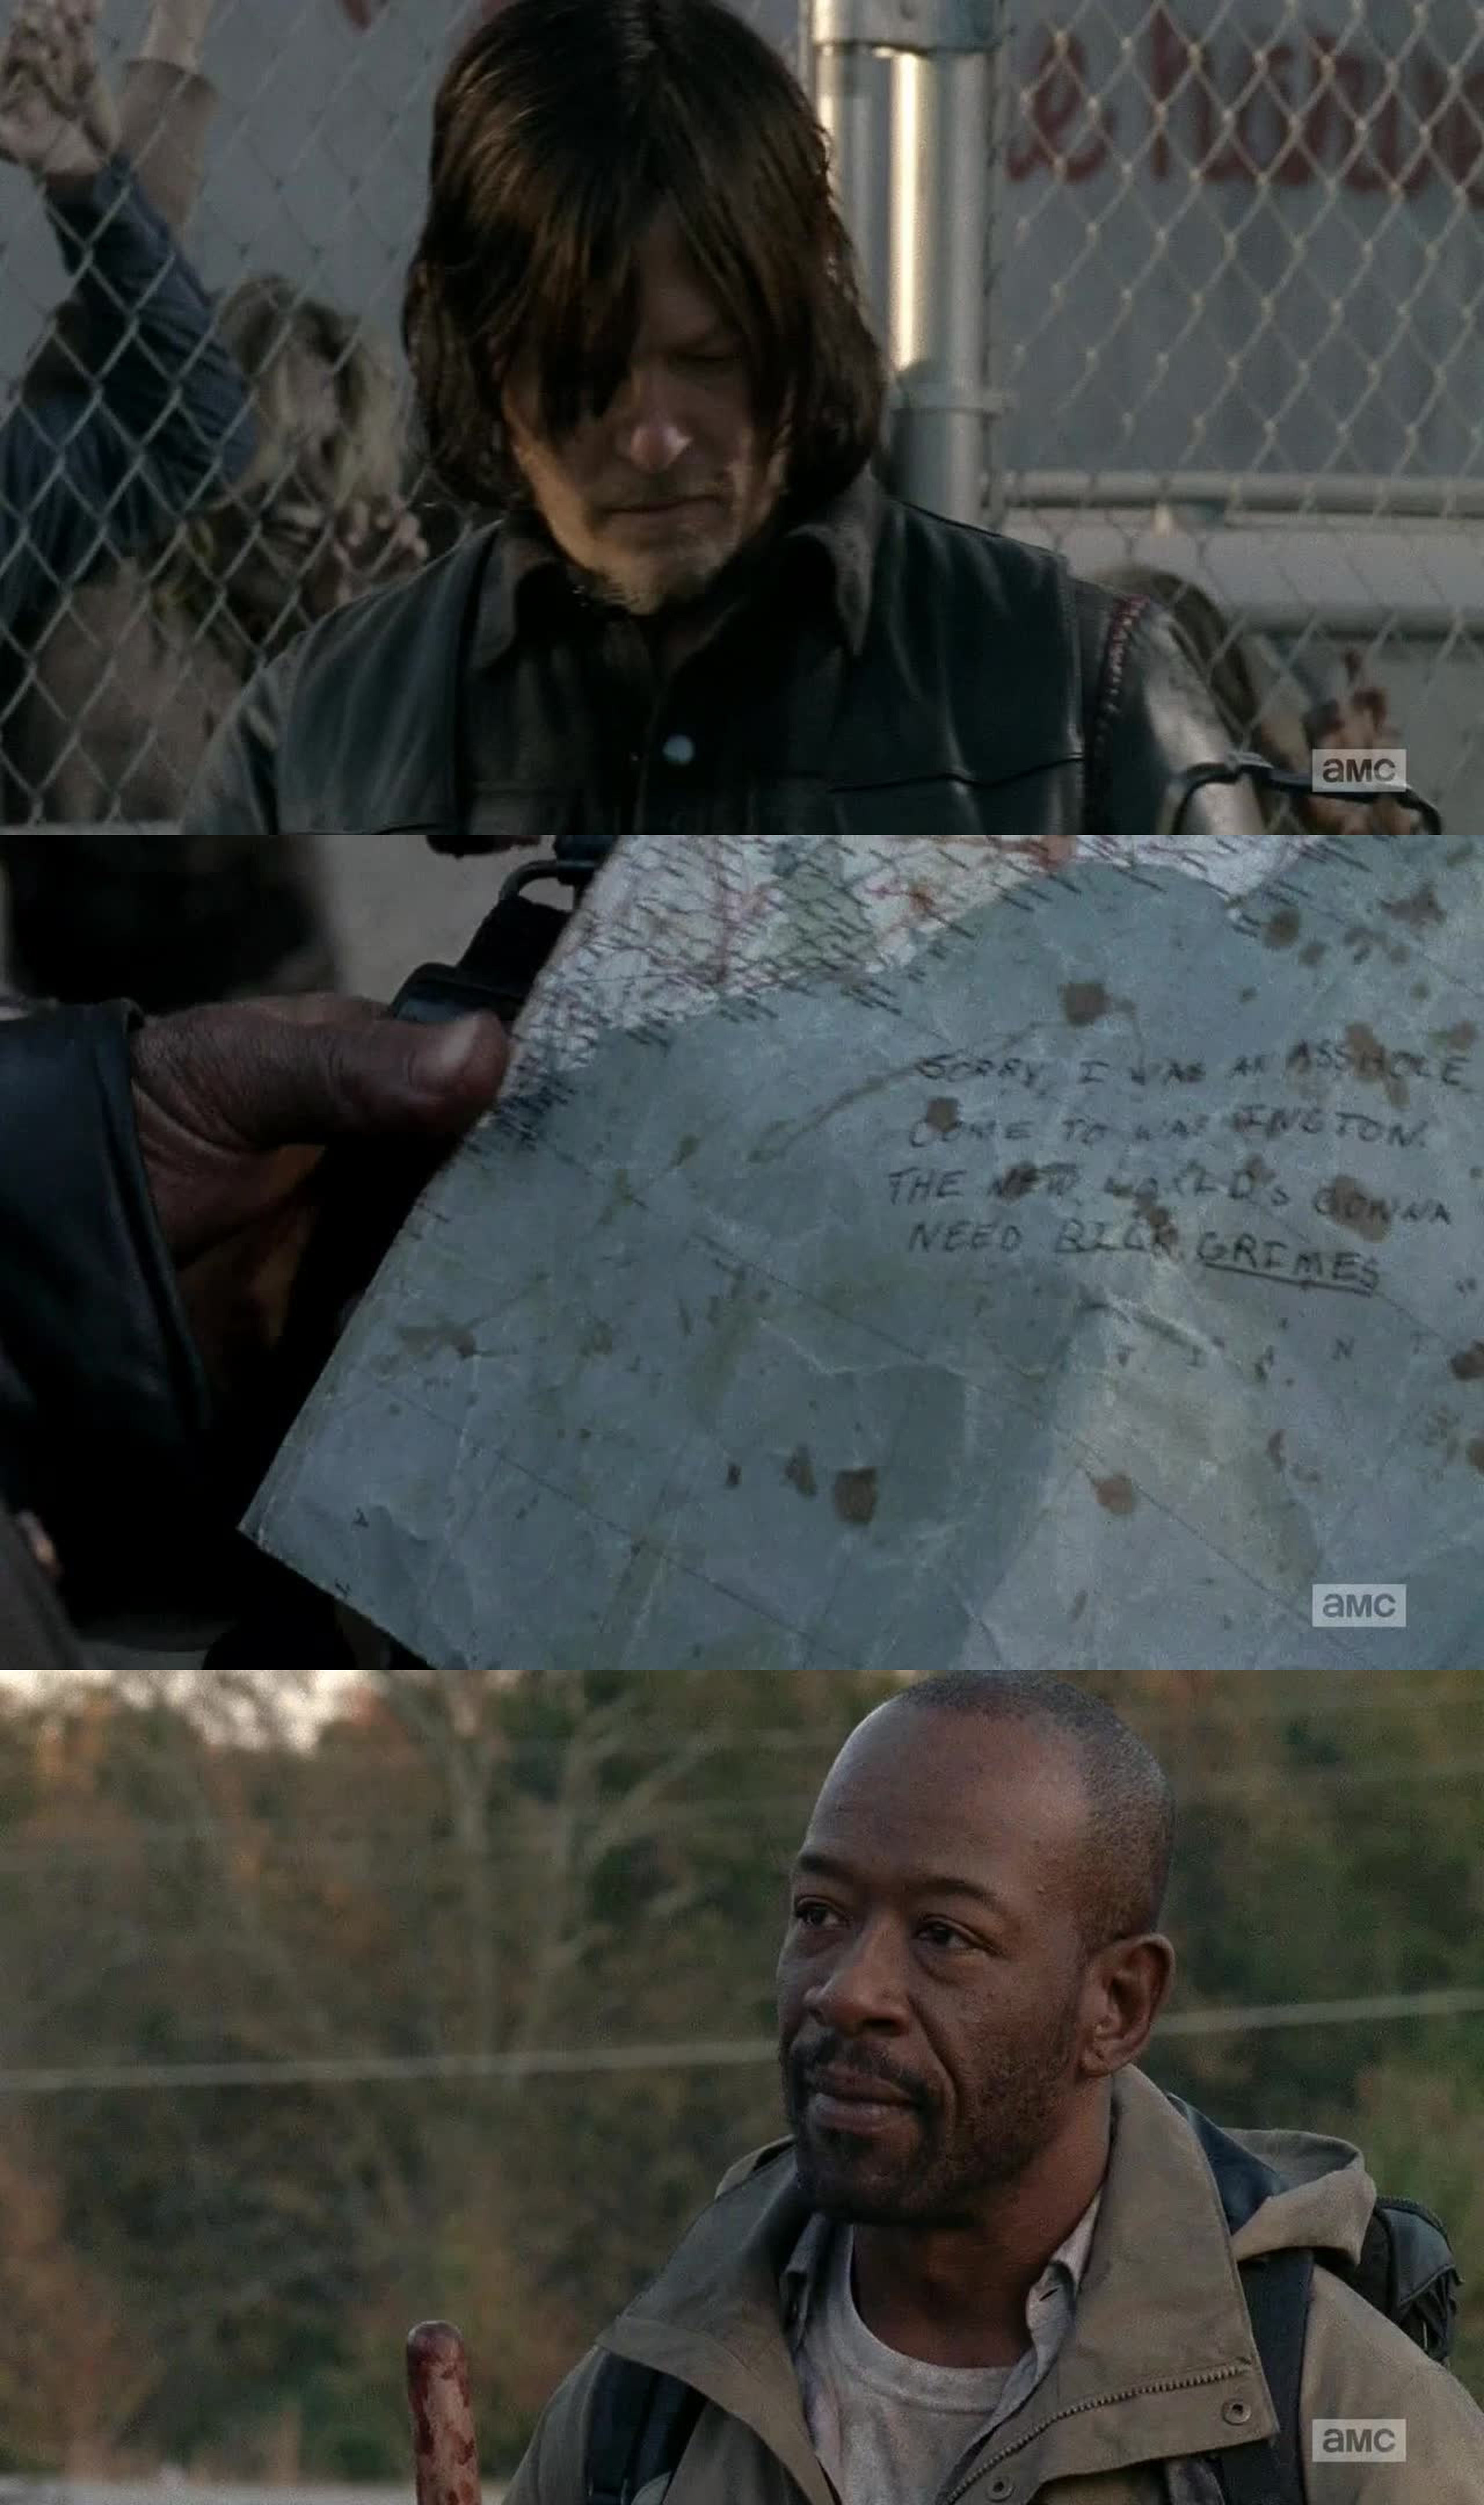 Okay so.. I am not sure what I really thought of this. It didn't completely seem like a season finale. A bit too slow. But I mean, The episode was still good. Just guess I expected more. I honestly thought Glenn or someone from the group, would die. Glad he didnt't of course. Good to see Morgan again, though.